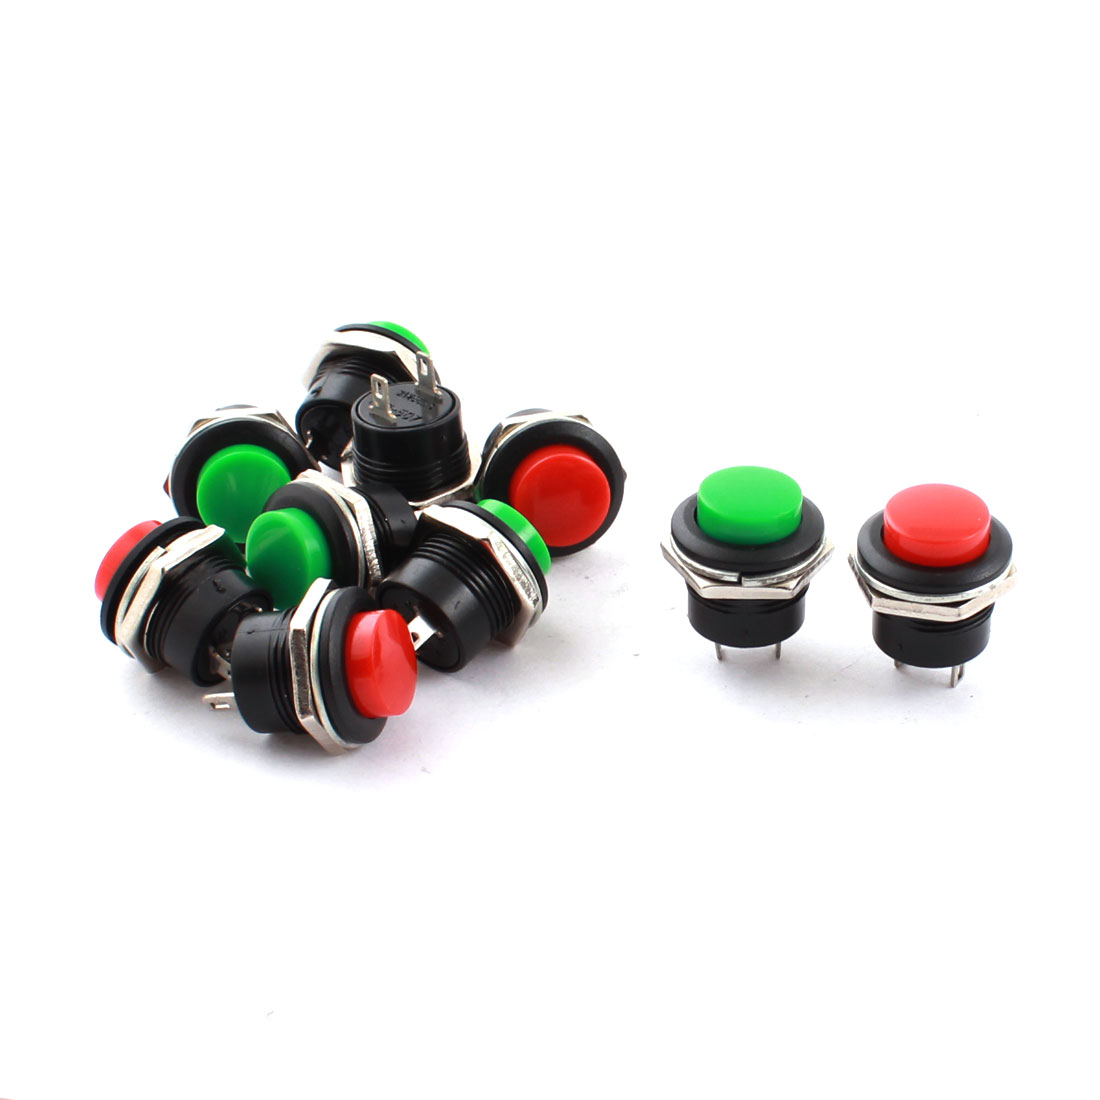 10 Pcs AC 250V 3A Green Red Cap 2 Terminals 16mm Mounting Dia SPST Momentary Push Button Switch